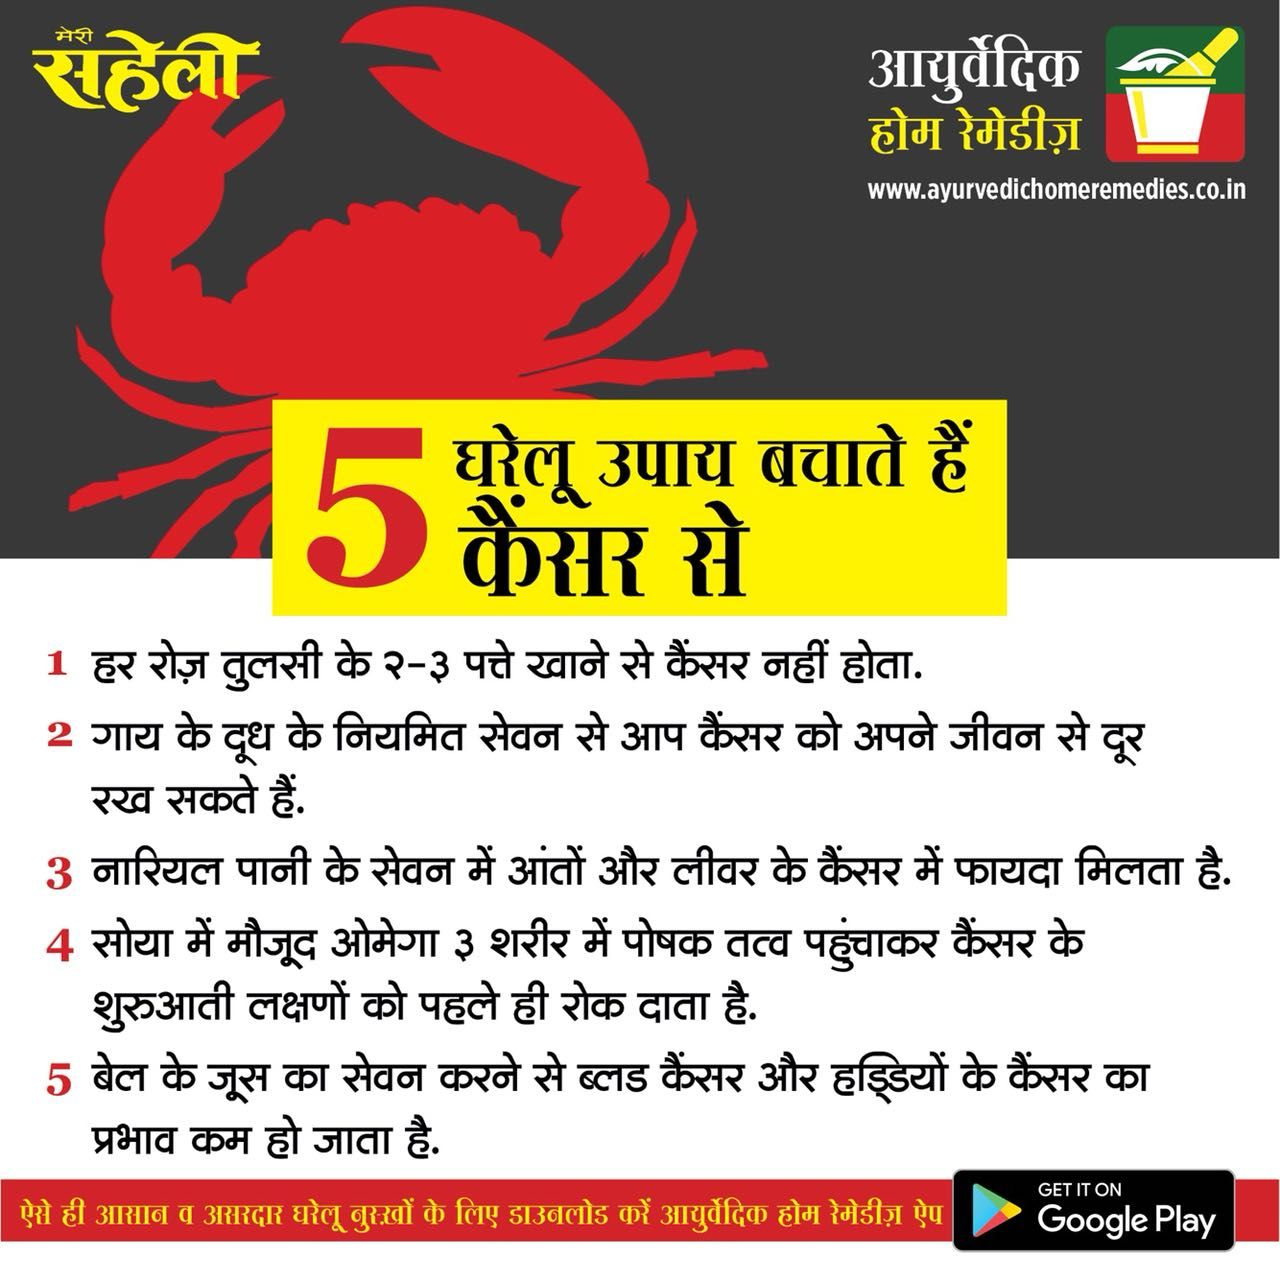 Check Out This very informative Ayurvedic Home Remedies App